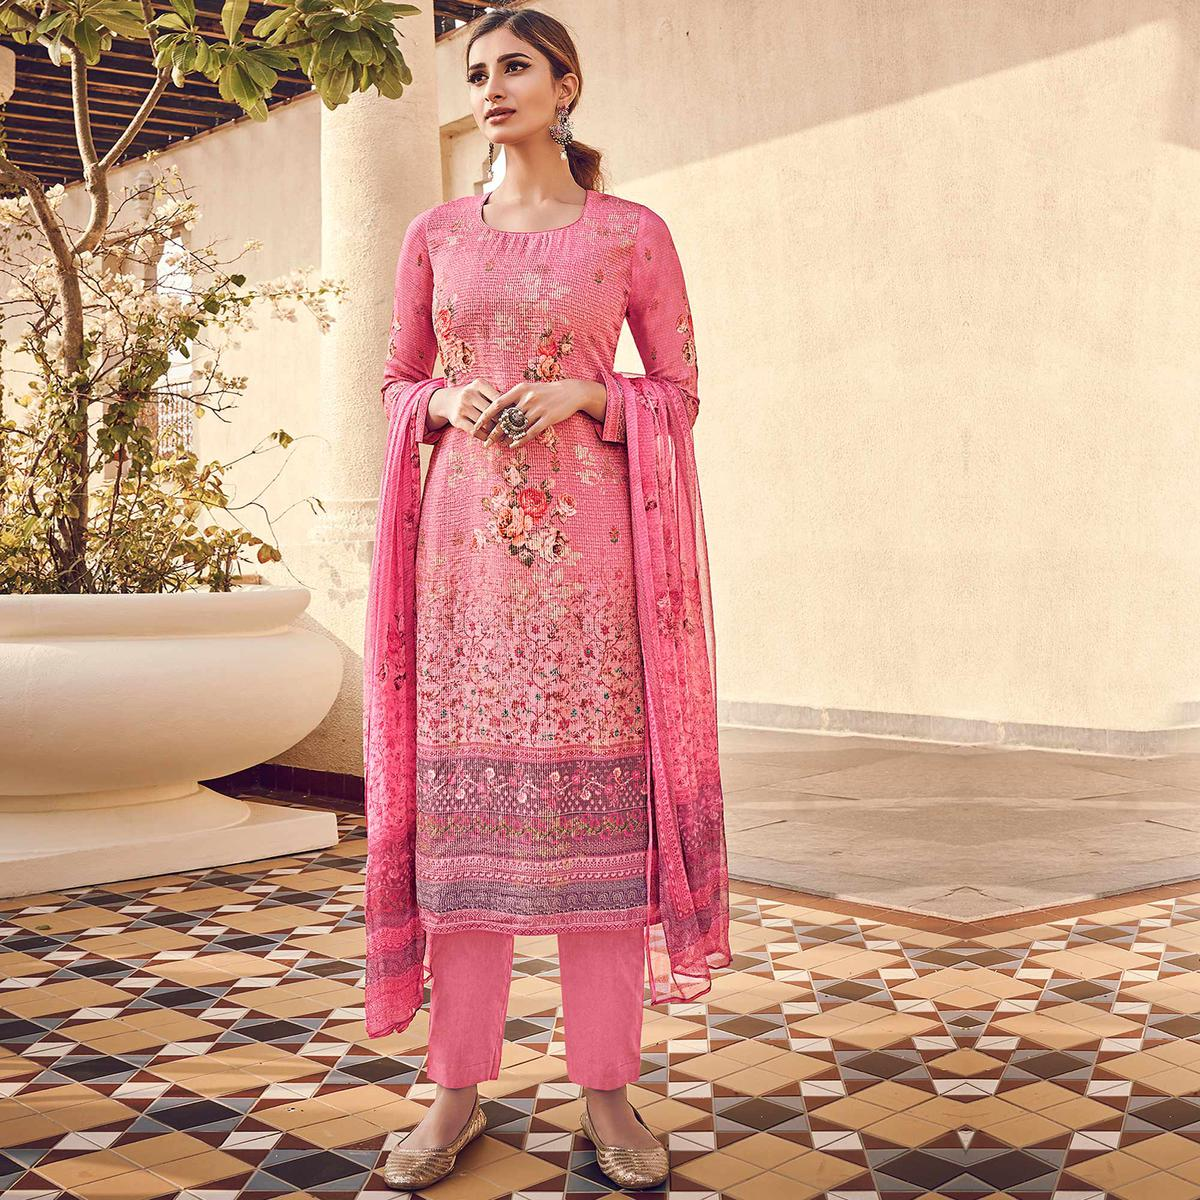 Stylee Lifestyle - Pink Colored Casual Wear Digital Printed Pure Silk Dress Material